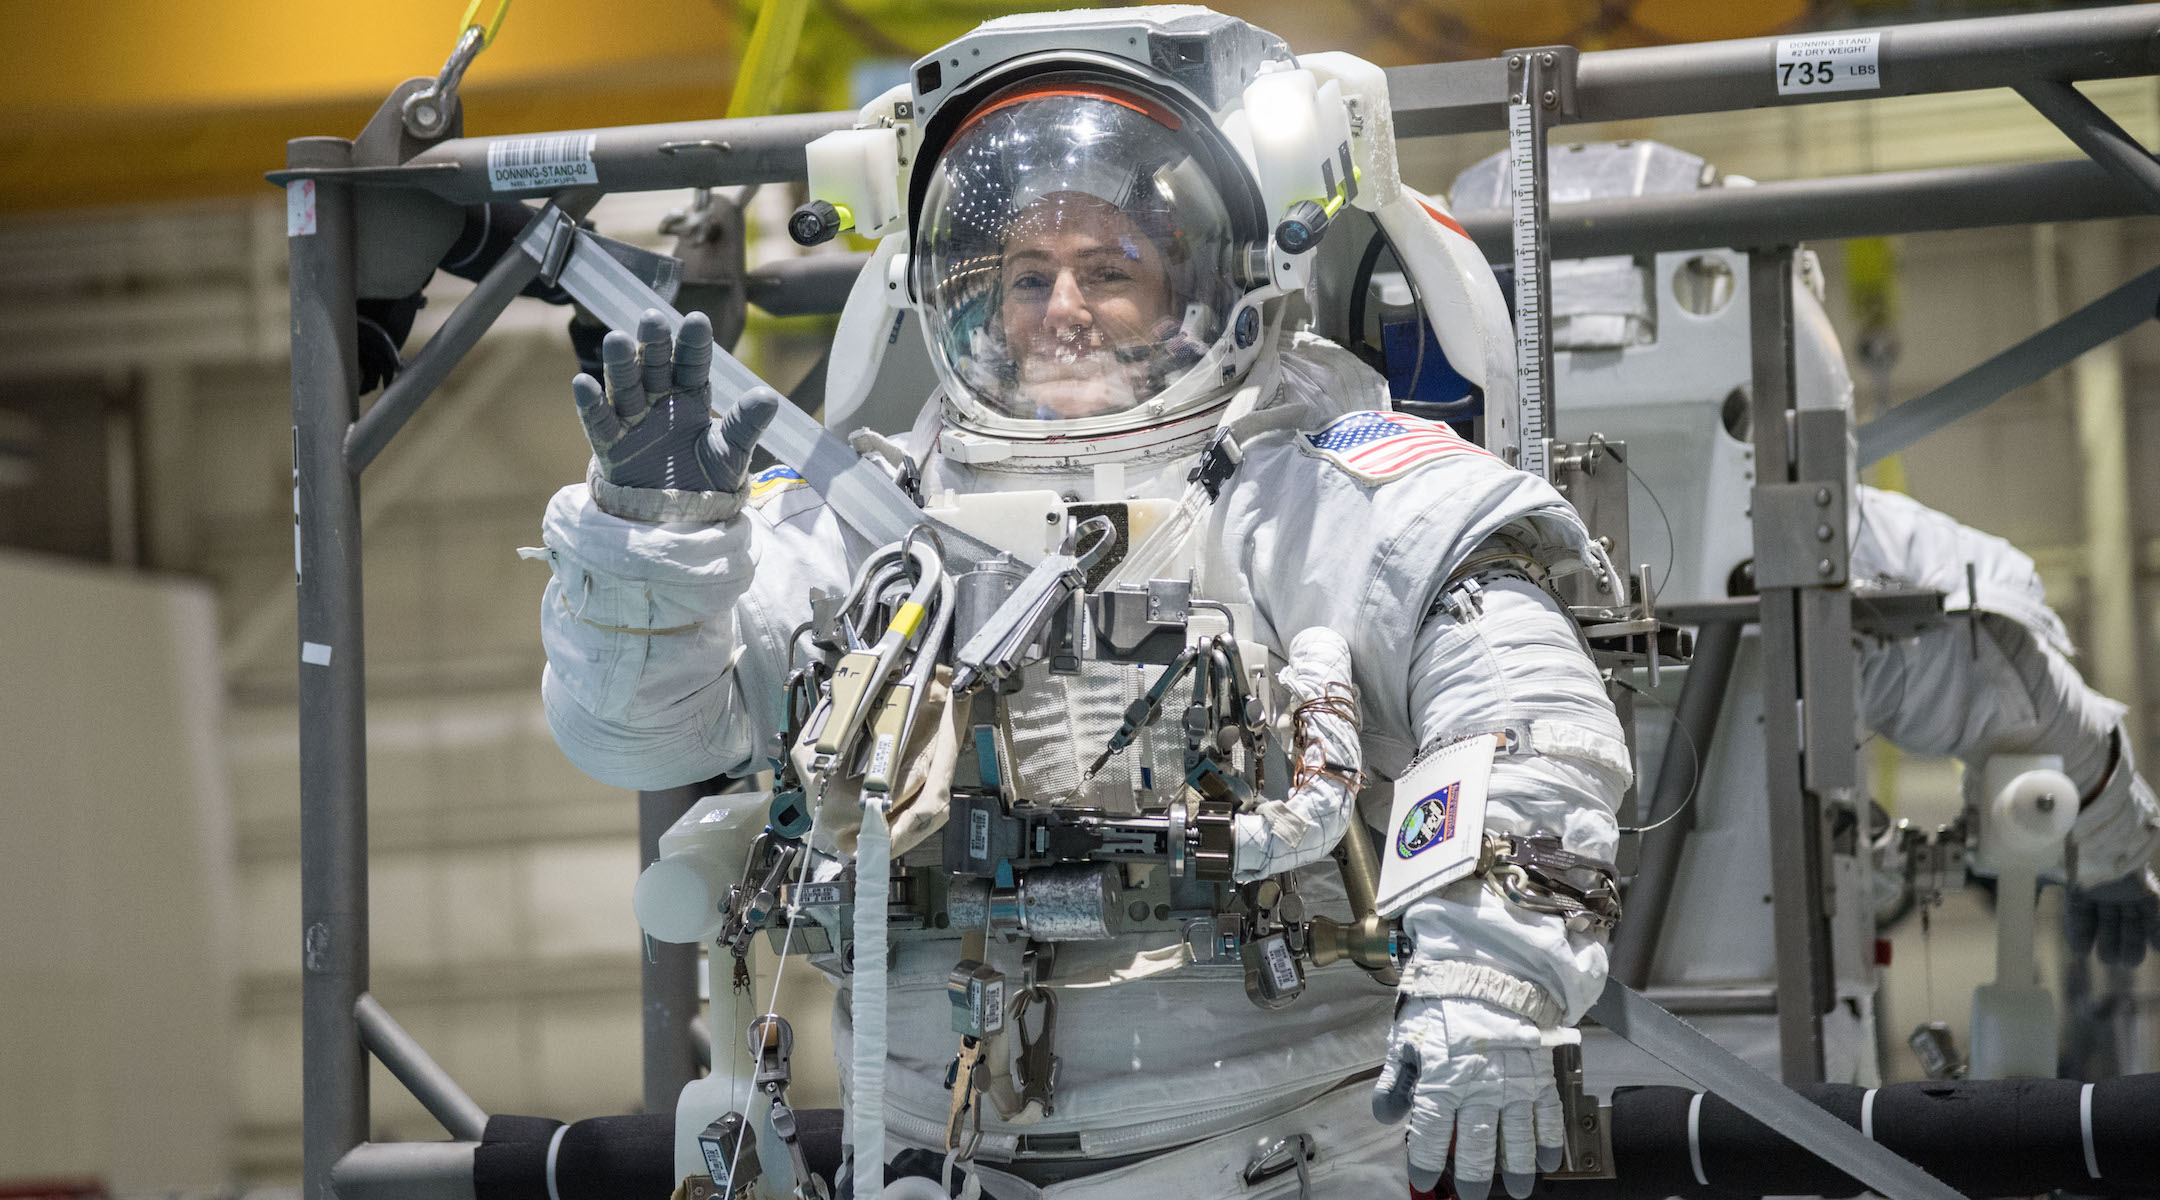 Jessica Meir prepares to be submerged in NASA's 6.2 million gallon Neutral Buoyancy Laboratory for spacewalk training. (Photo/JTA-NASA-Josh Valcarcel)